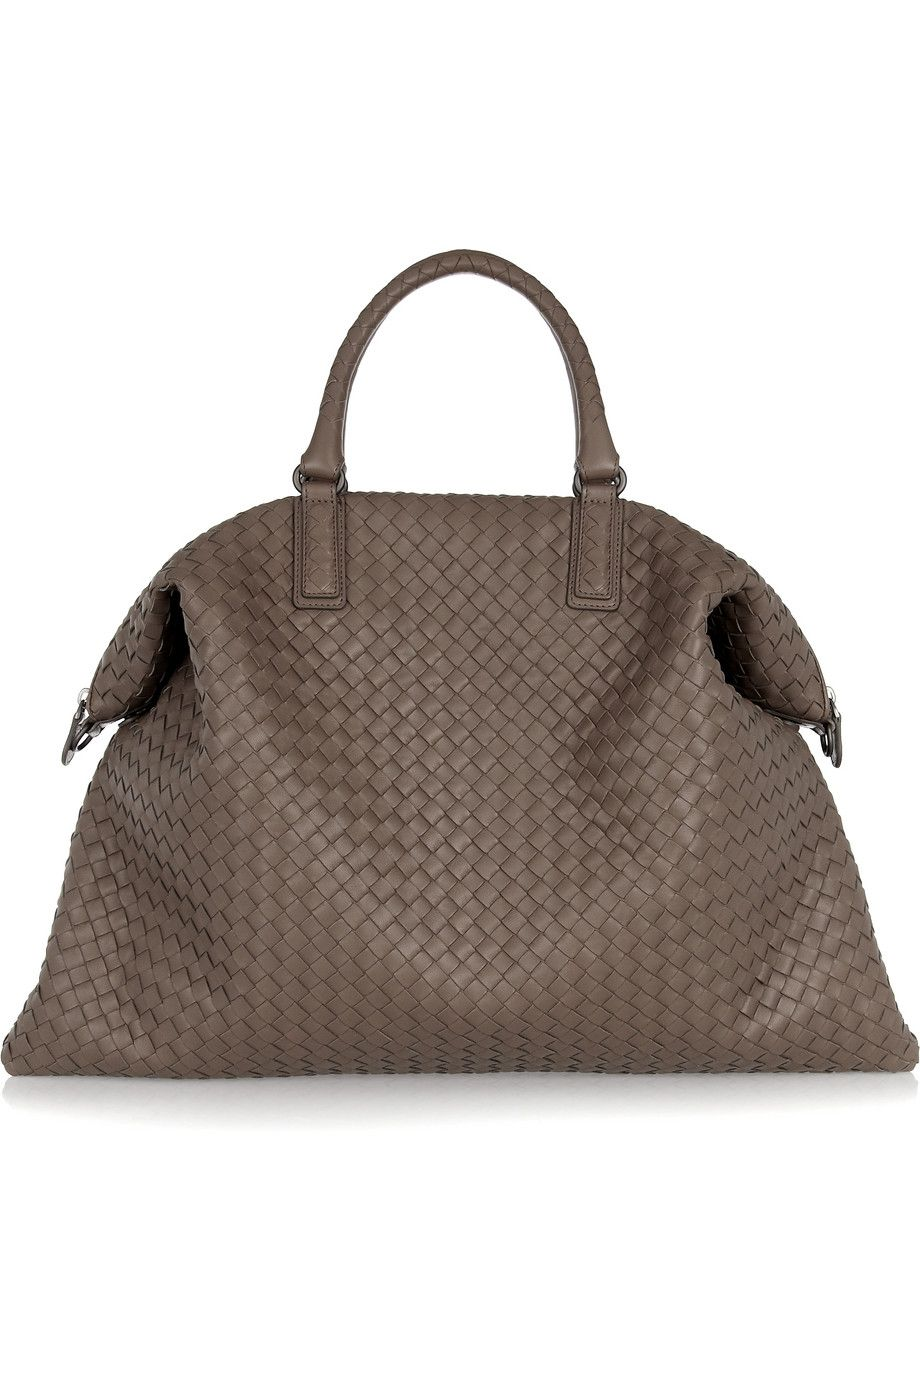 18fa9035648d BOTTEGA VENETA Intrecciato leather tote -  4